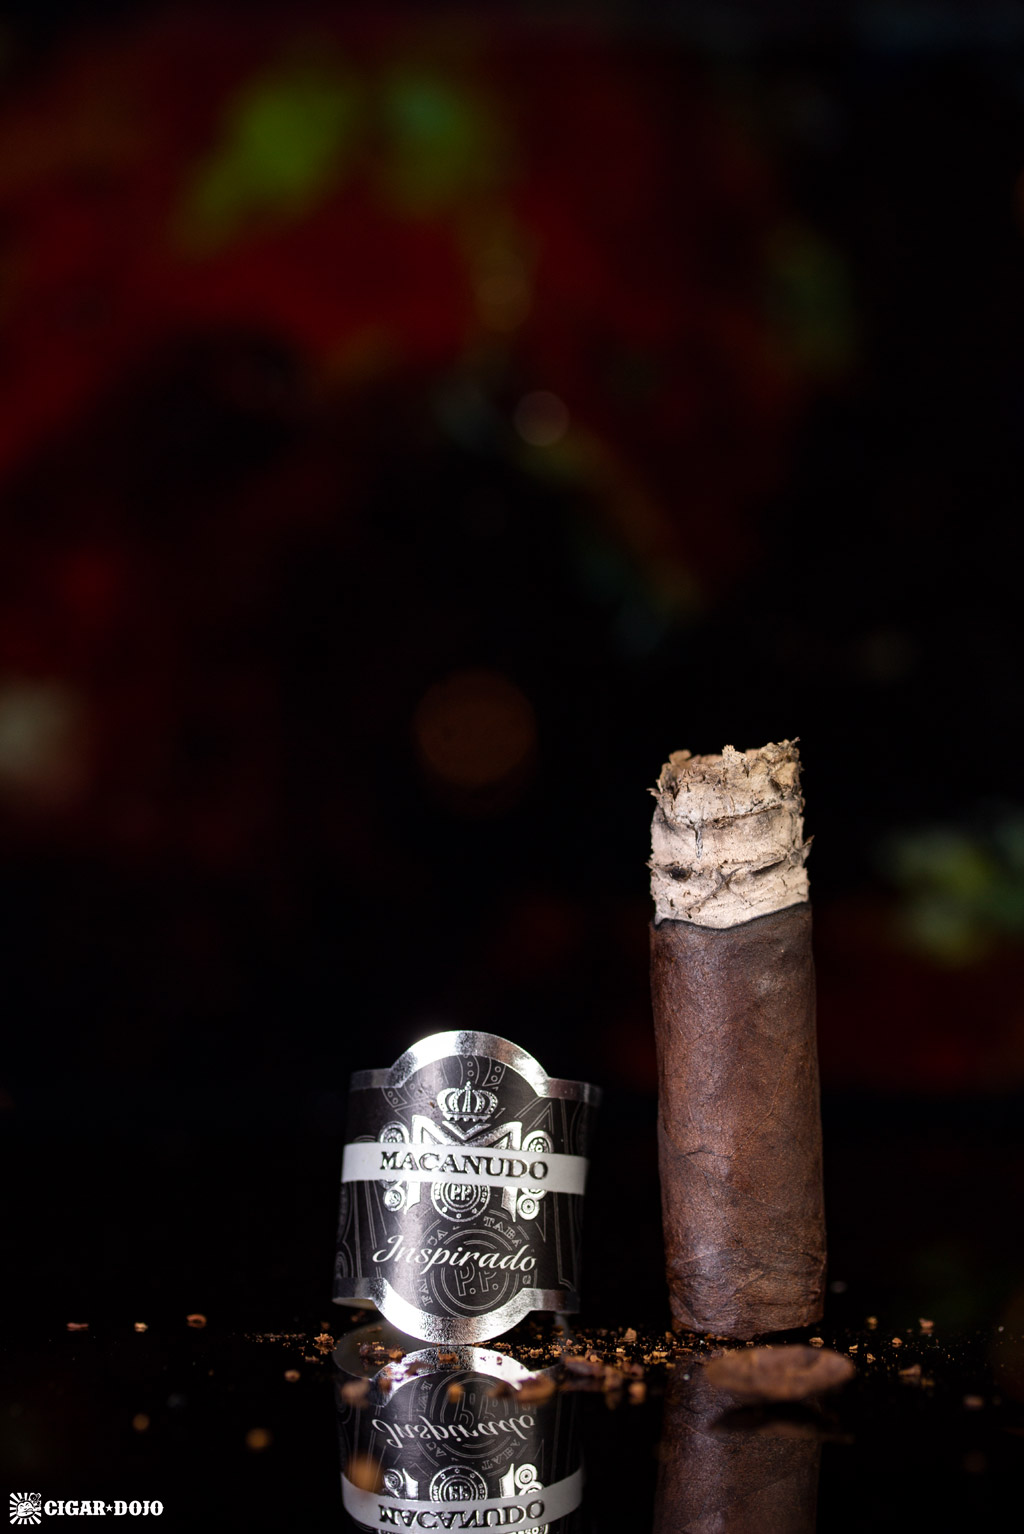 Macanudo Inspirado Black Robusto cigar finished